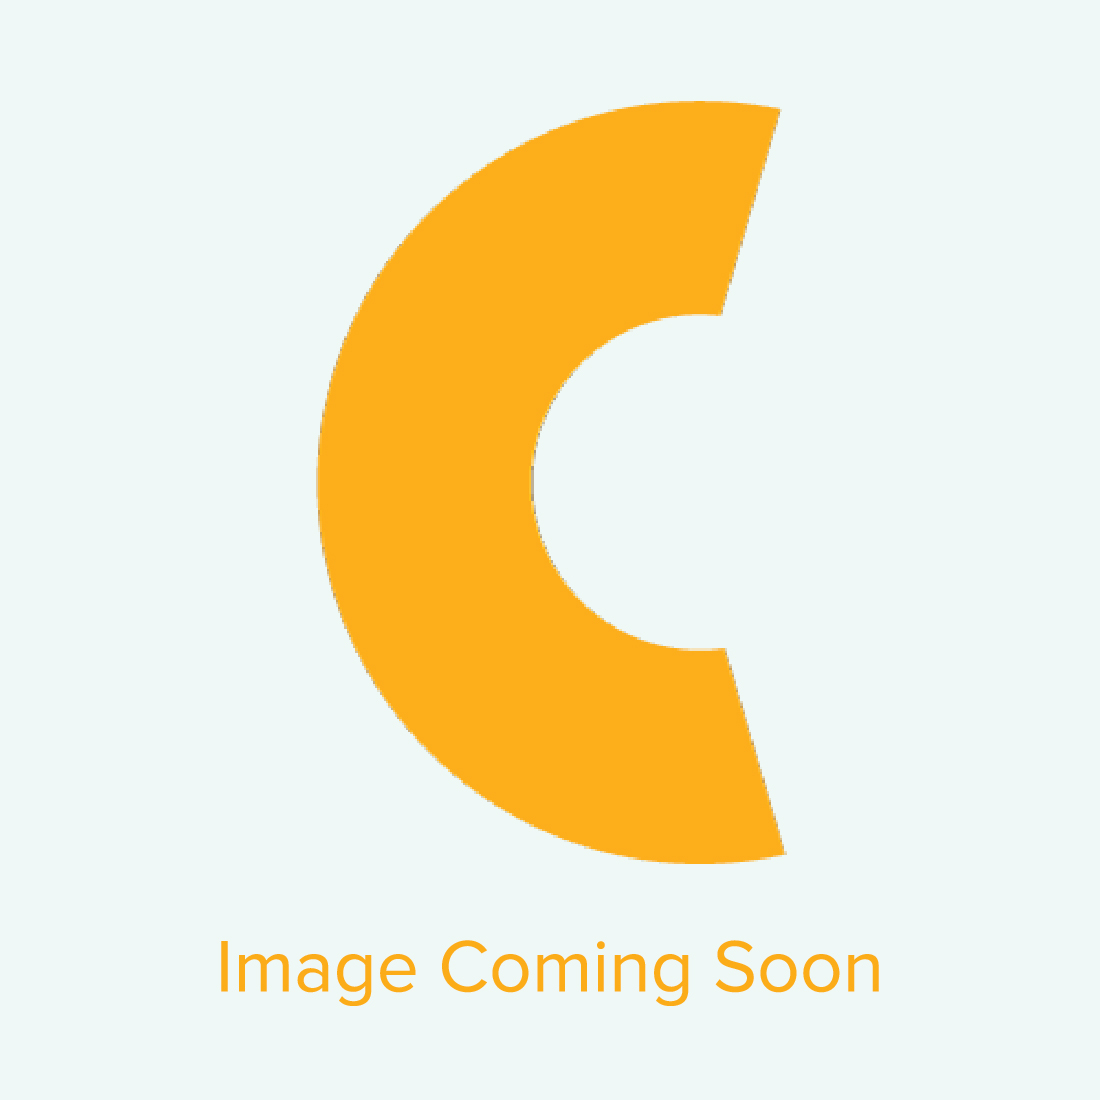 ChromaBlast Heat Transfer Paper for Cotton